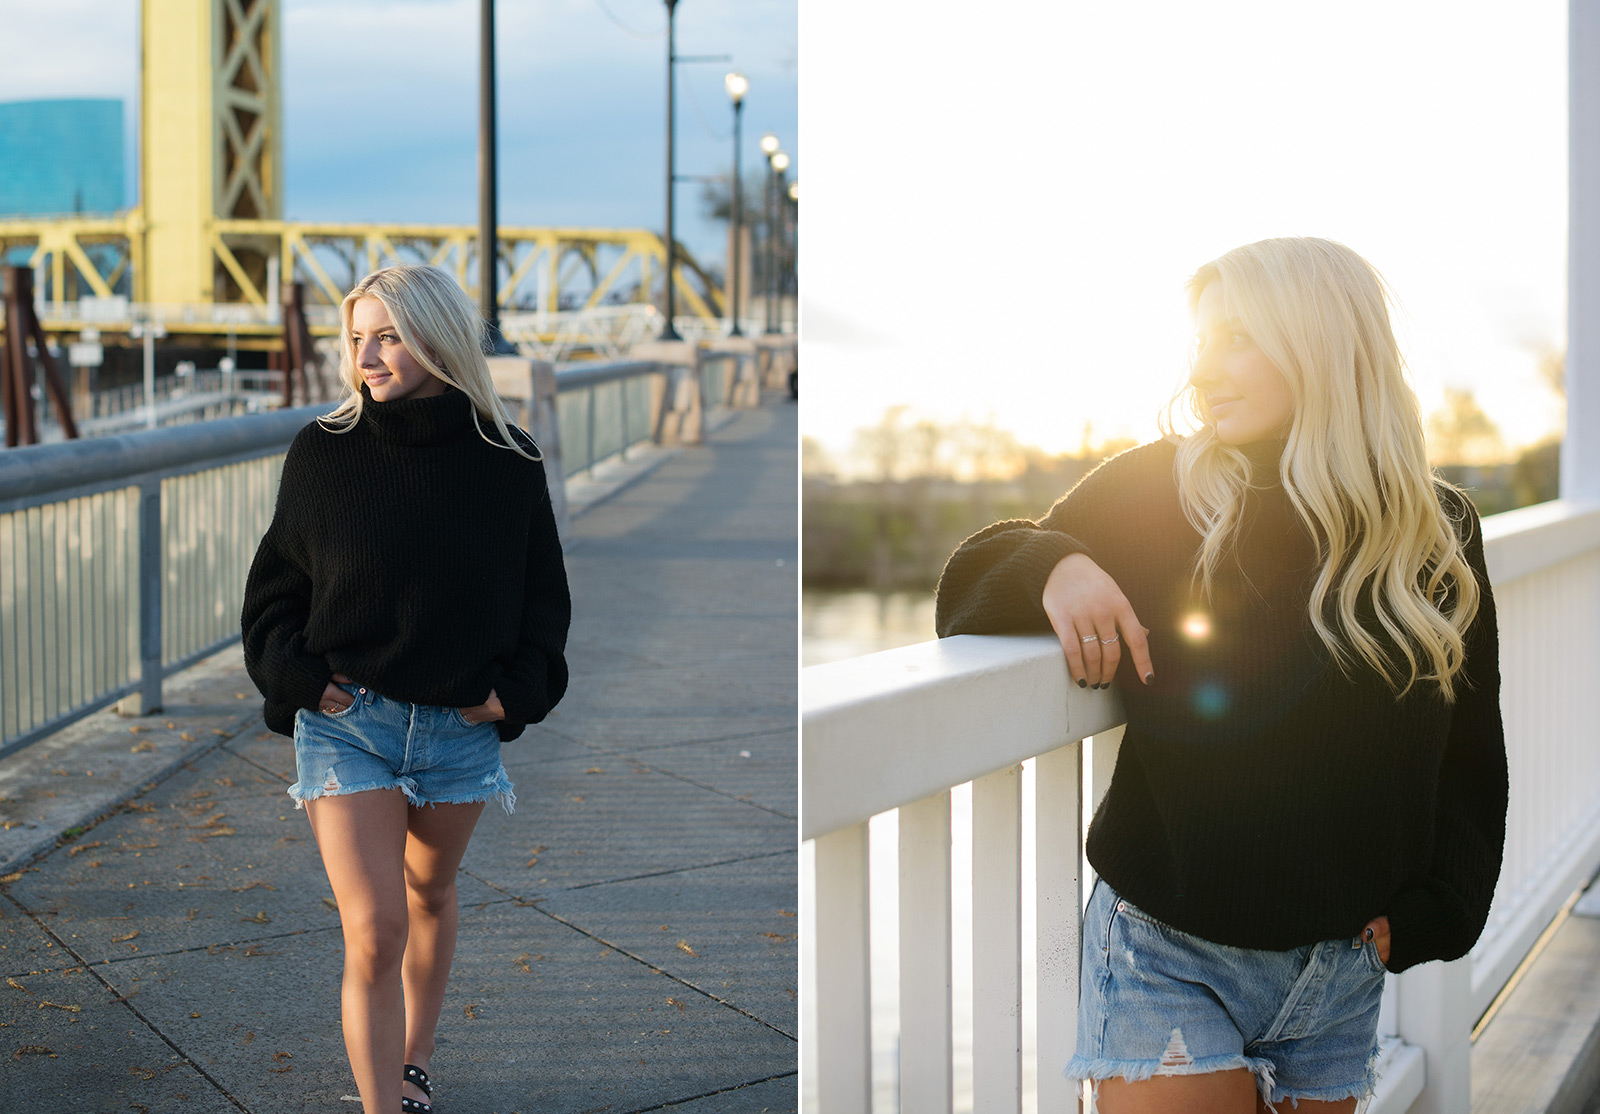 Senior portrait of teen girl wearing black turtleneck with Tower Bridge in background and sunset golden hour